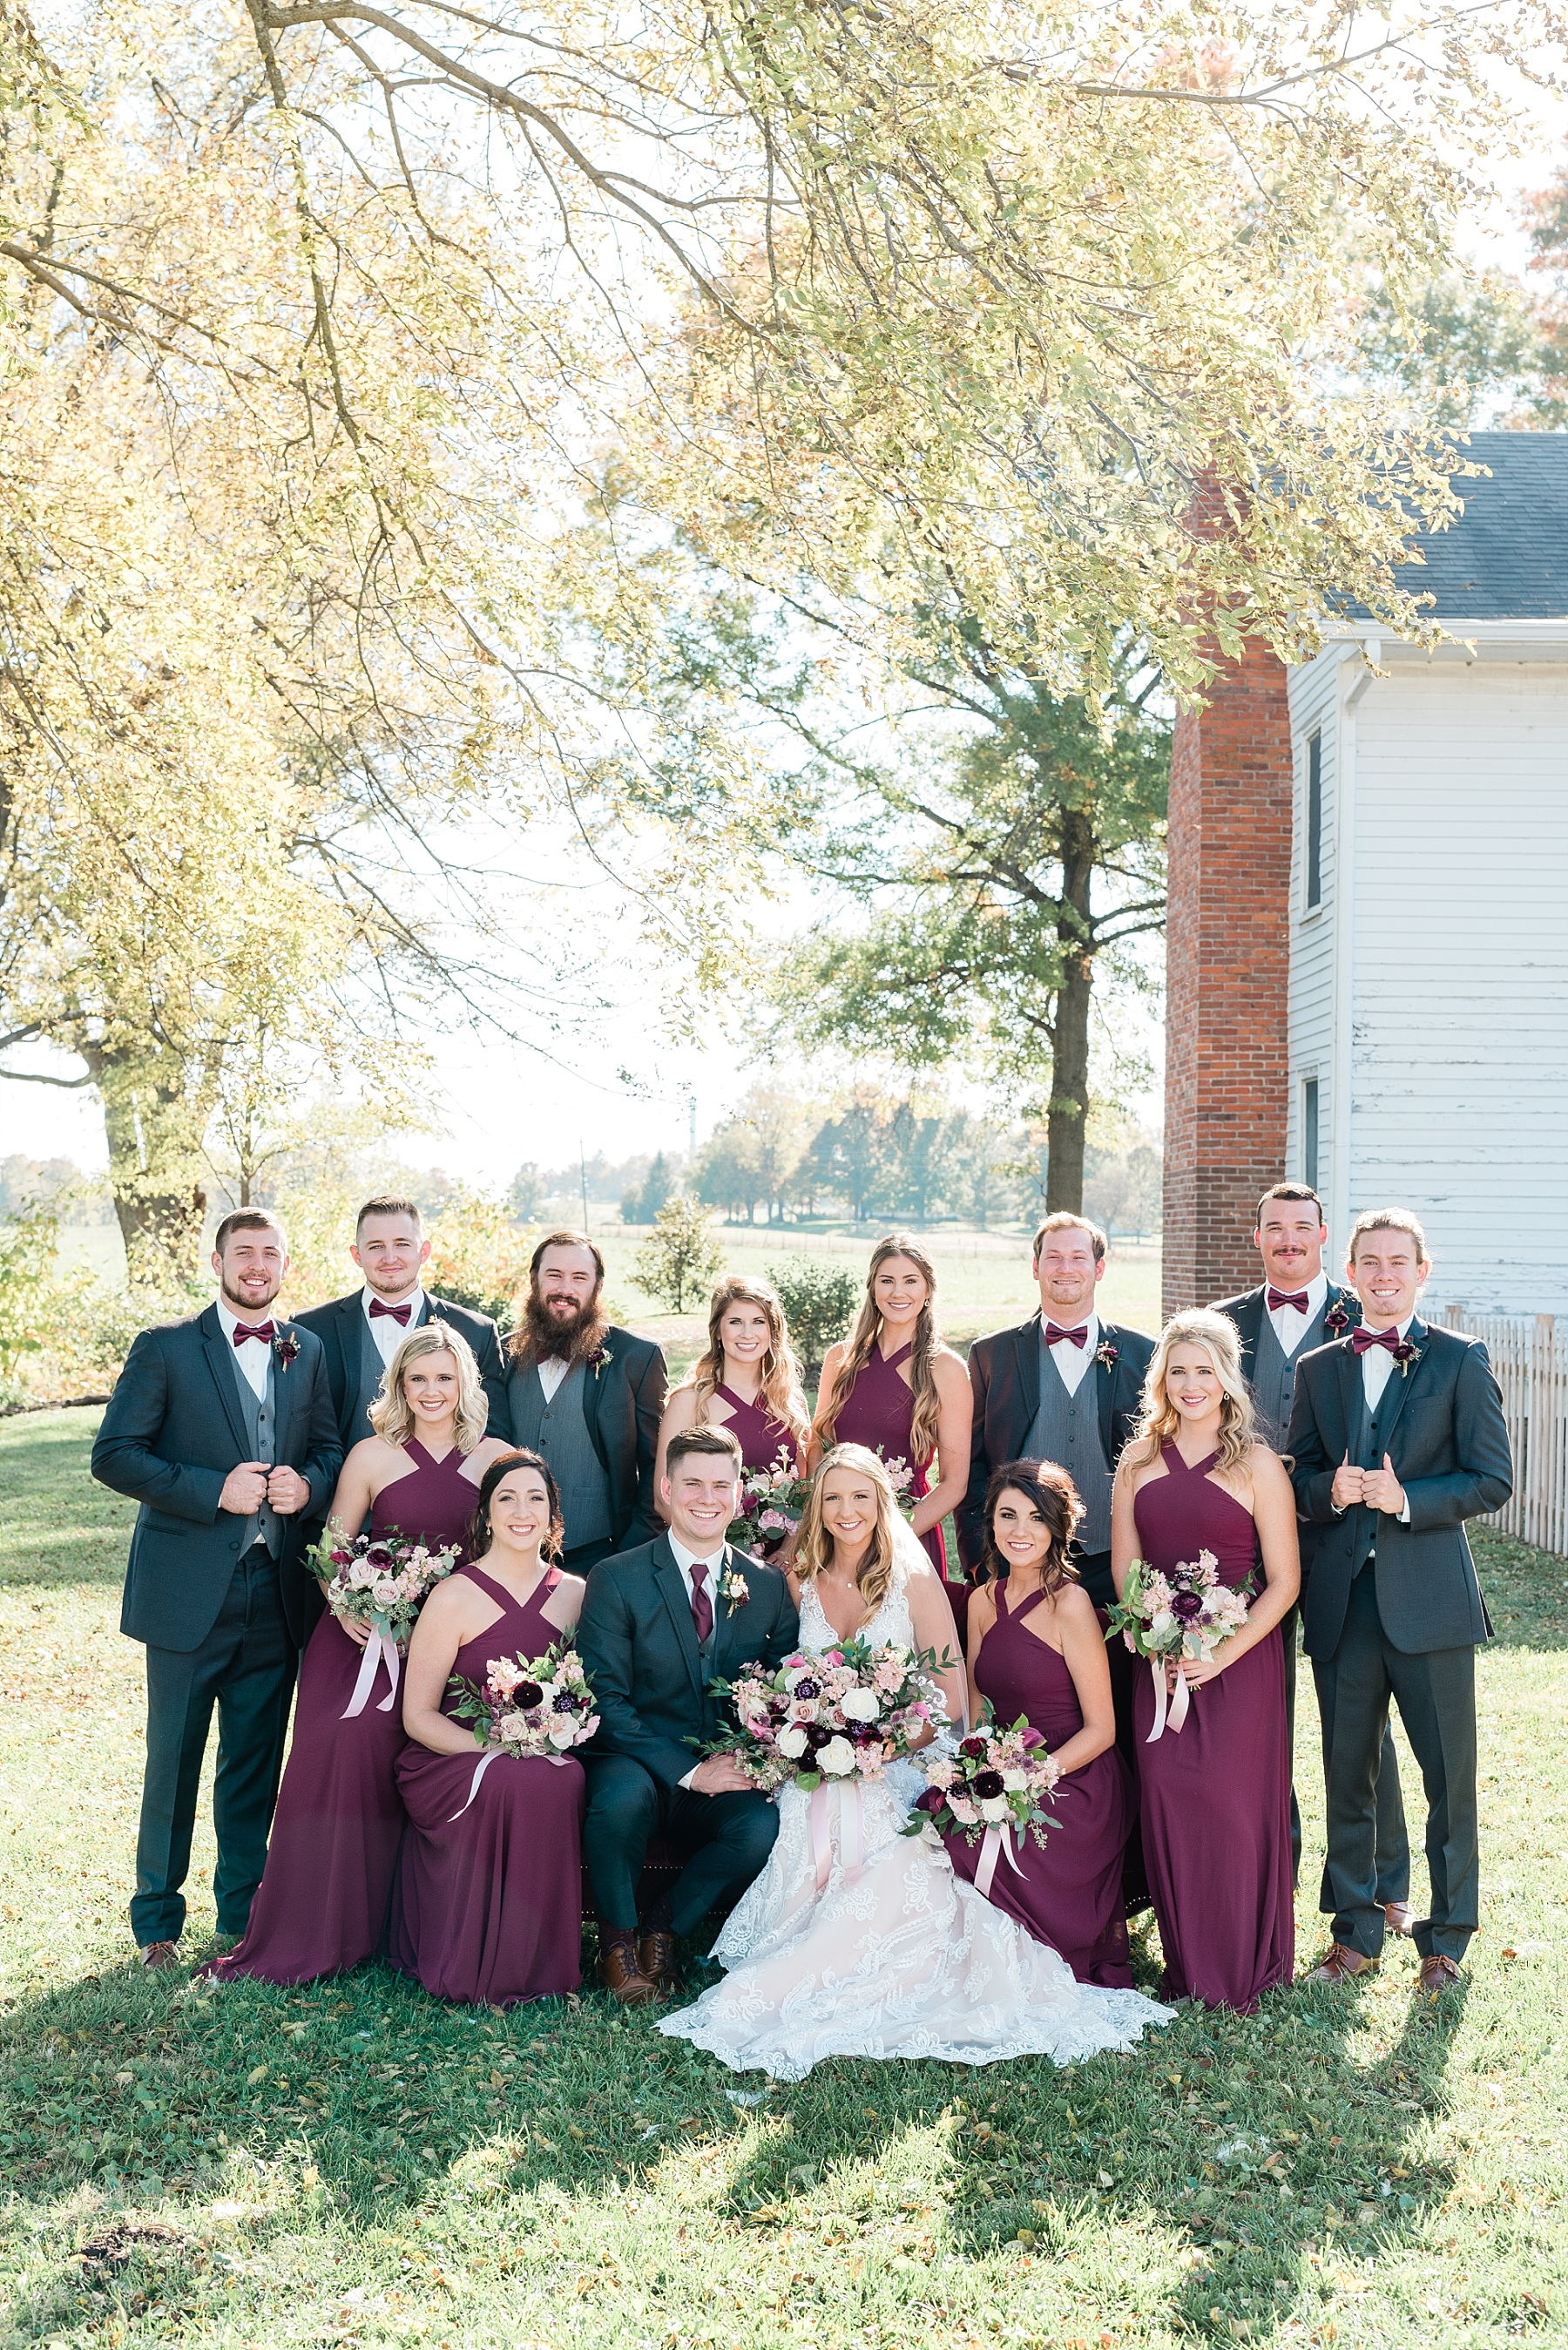 Golden Autumn Outdoor Wedding with Ivory, Bergundy, and Blush Color Palette at Blue Bell Farms  by Kelsi Kliethermes Photography_0077.jpg